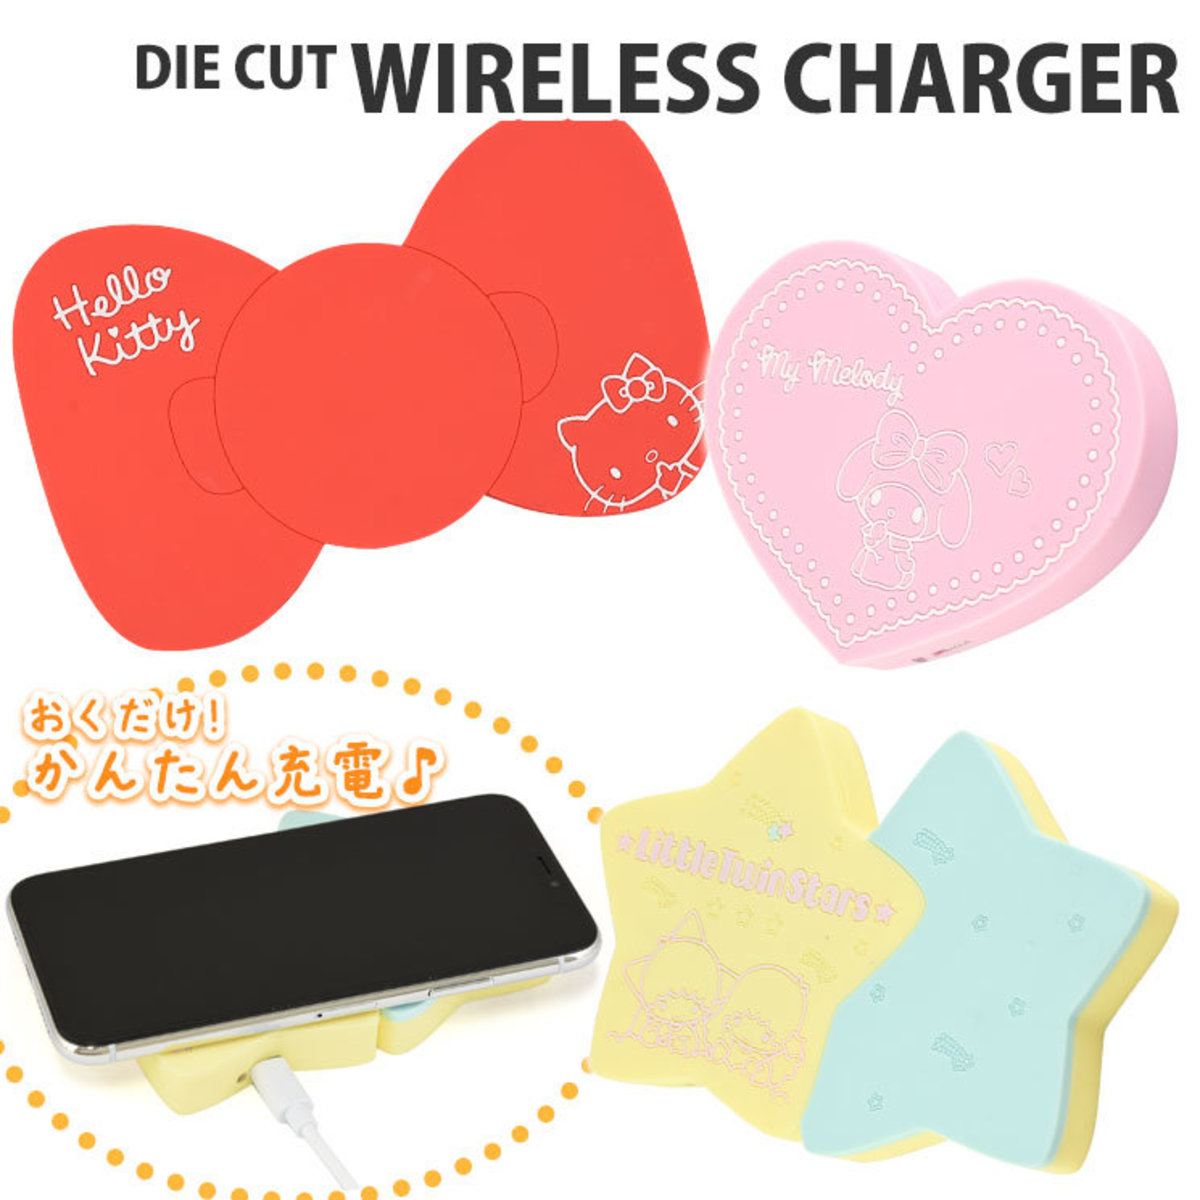 (Hello Kitty) Japan Sanrio Die-Cur Wireless Charger